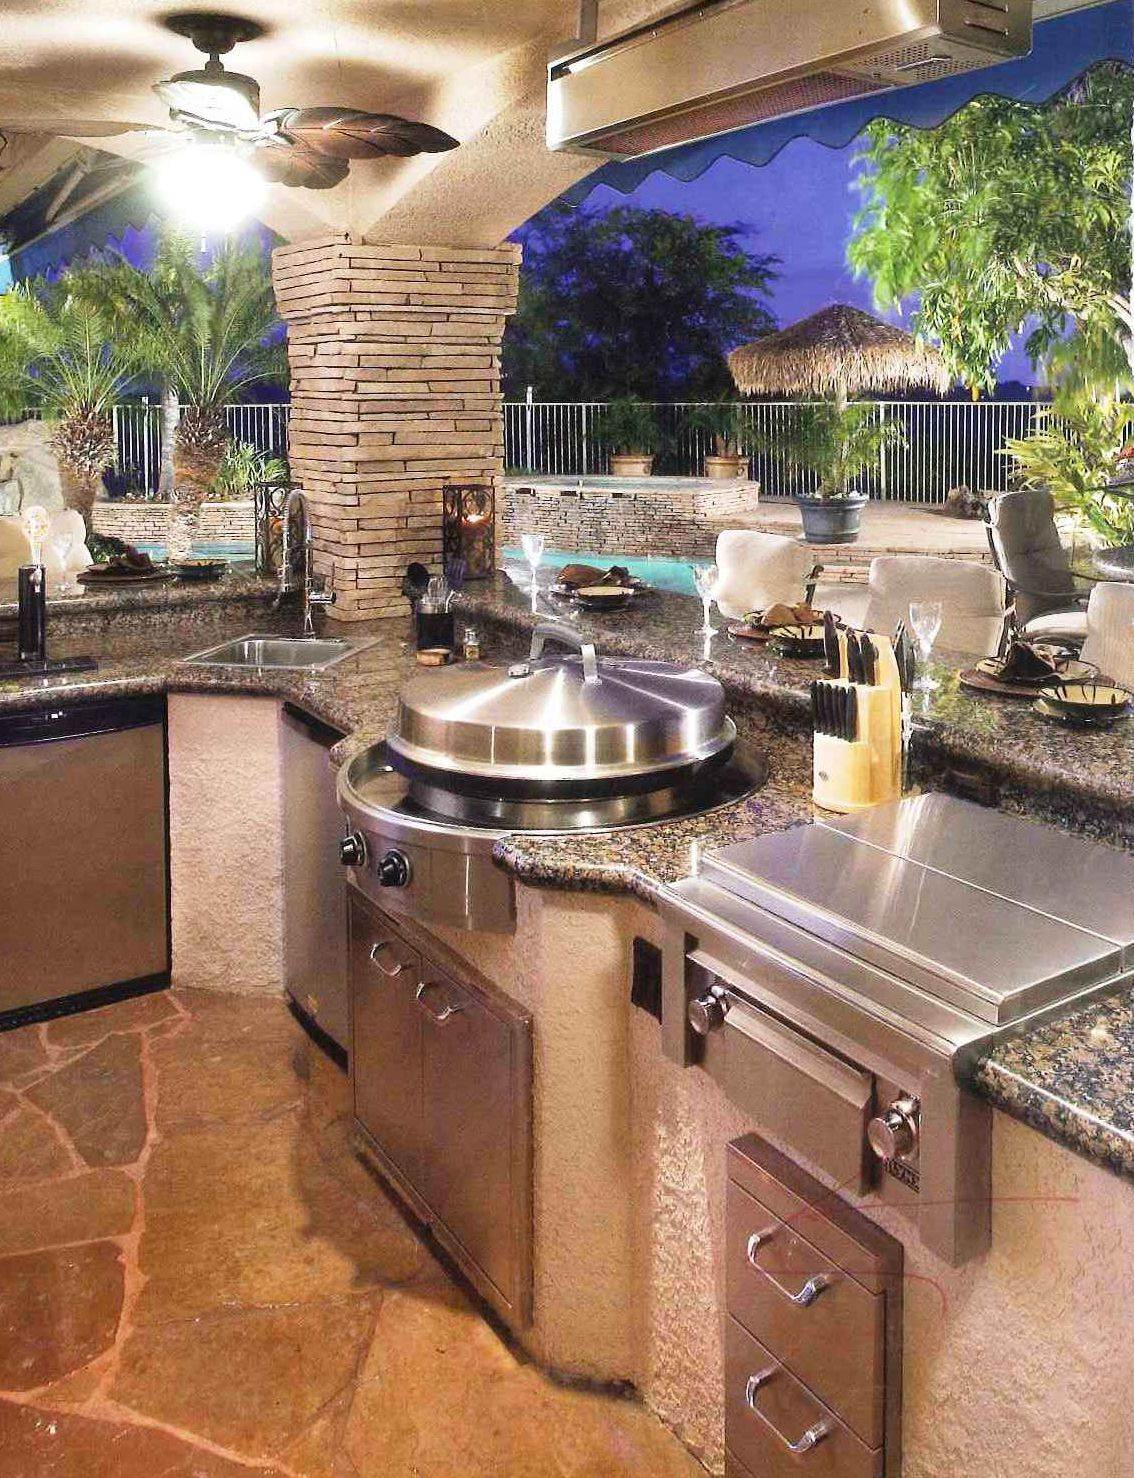 Uncategorized Summer Kitchen Design 70 awesomely clever ideas for outdoor kitchen designs designs